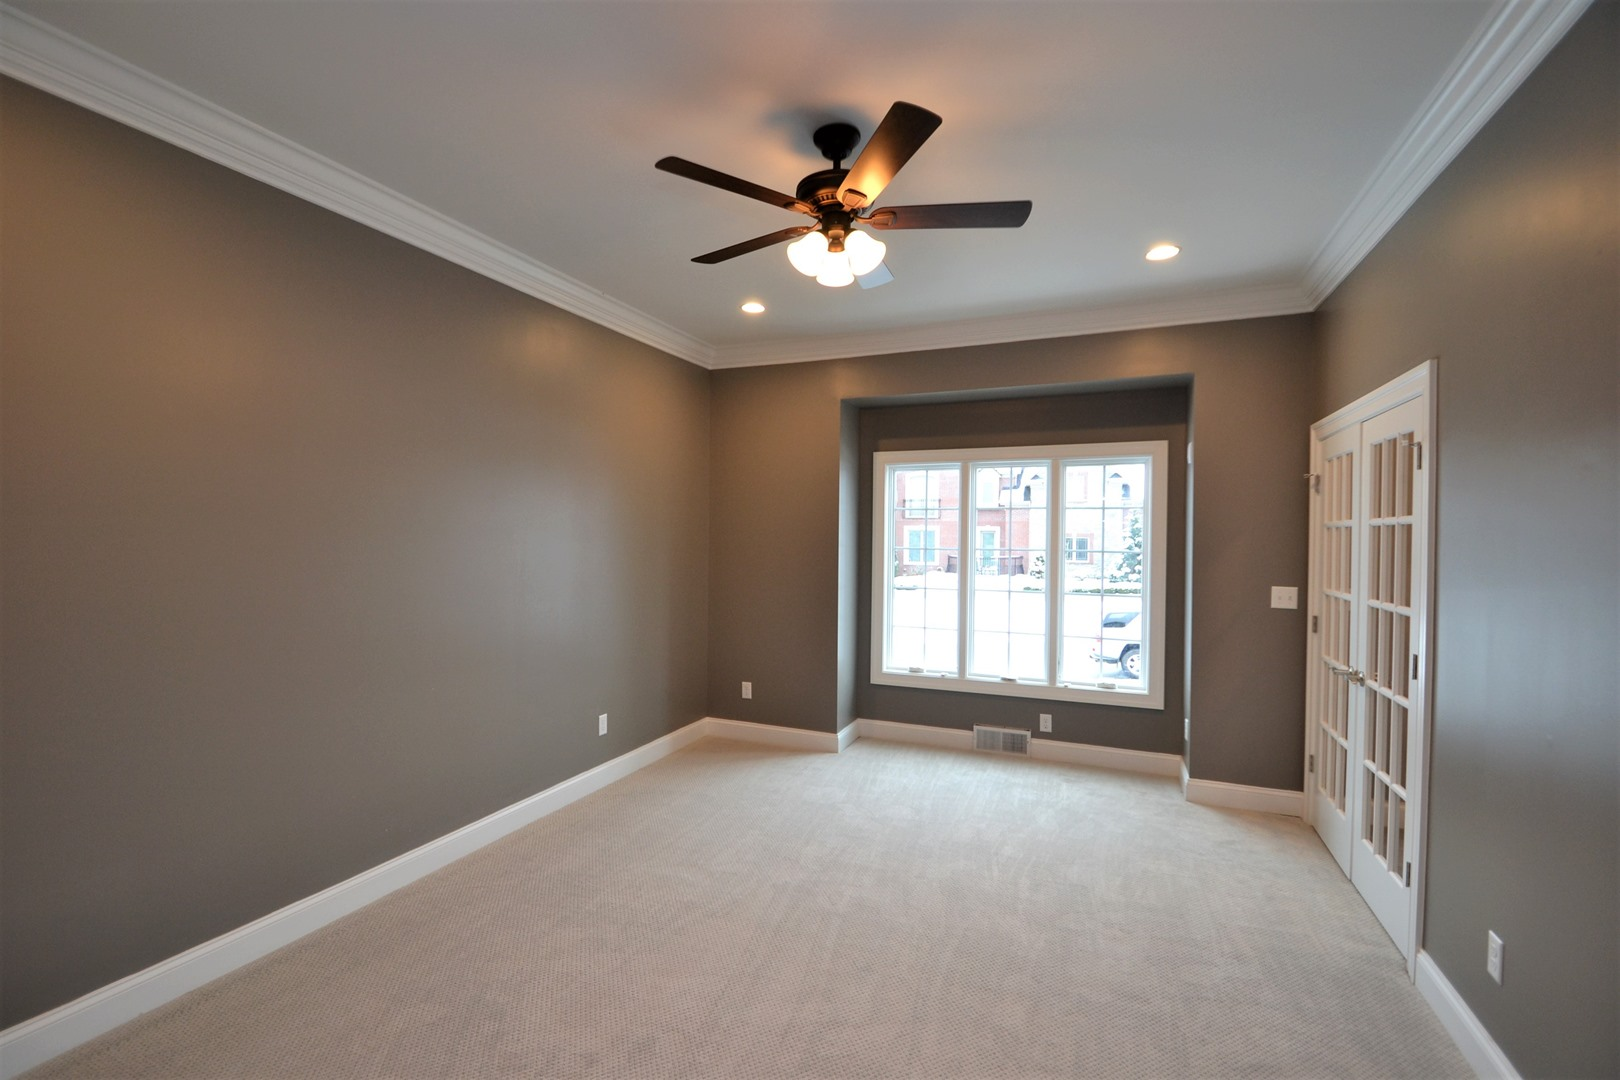 bedroom with ceiling fan and triple pane window